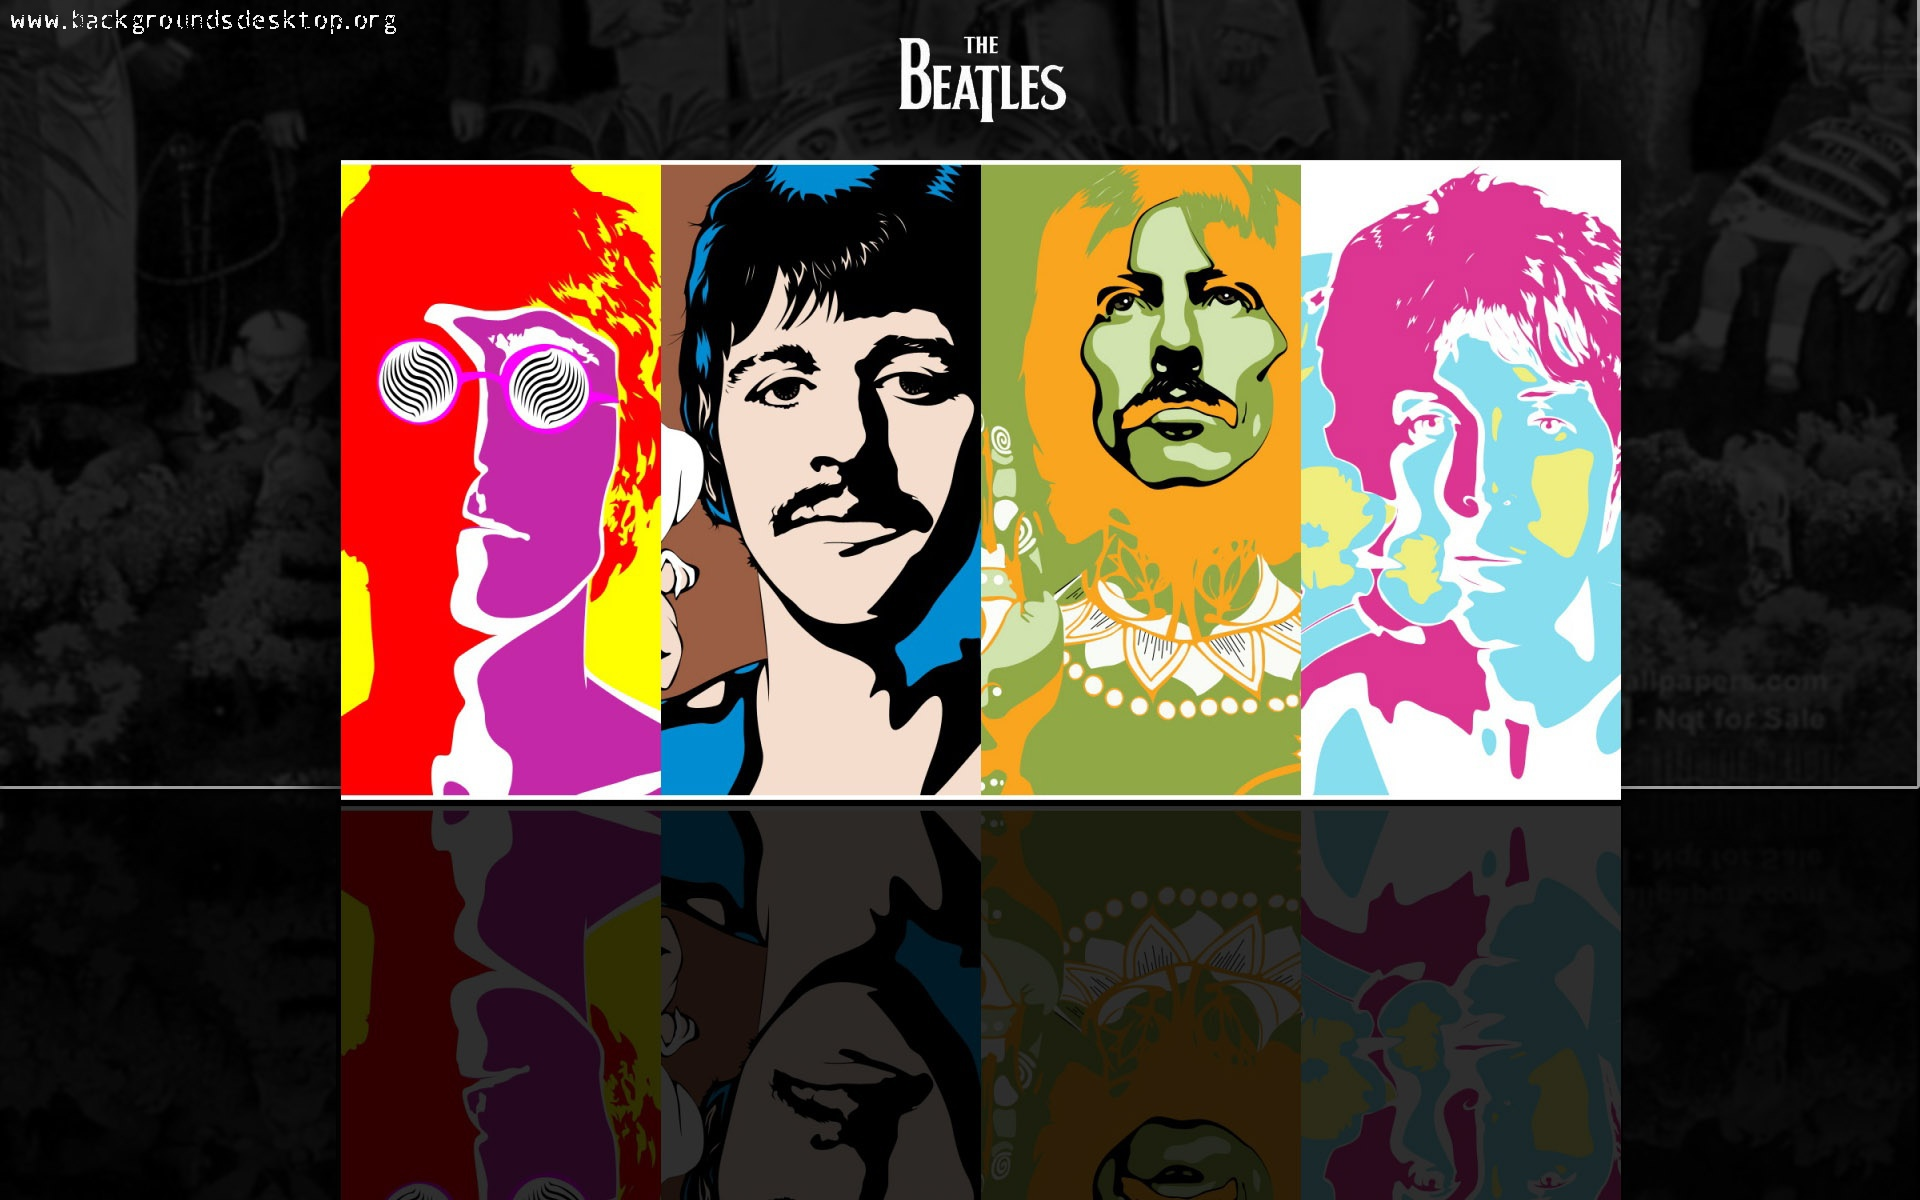 Painting Andy Warhol The beatles wallpapers and images   wallpapers 1920x1200